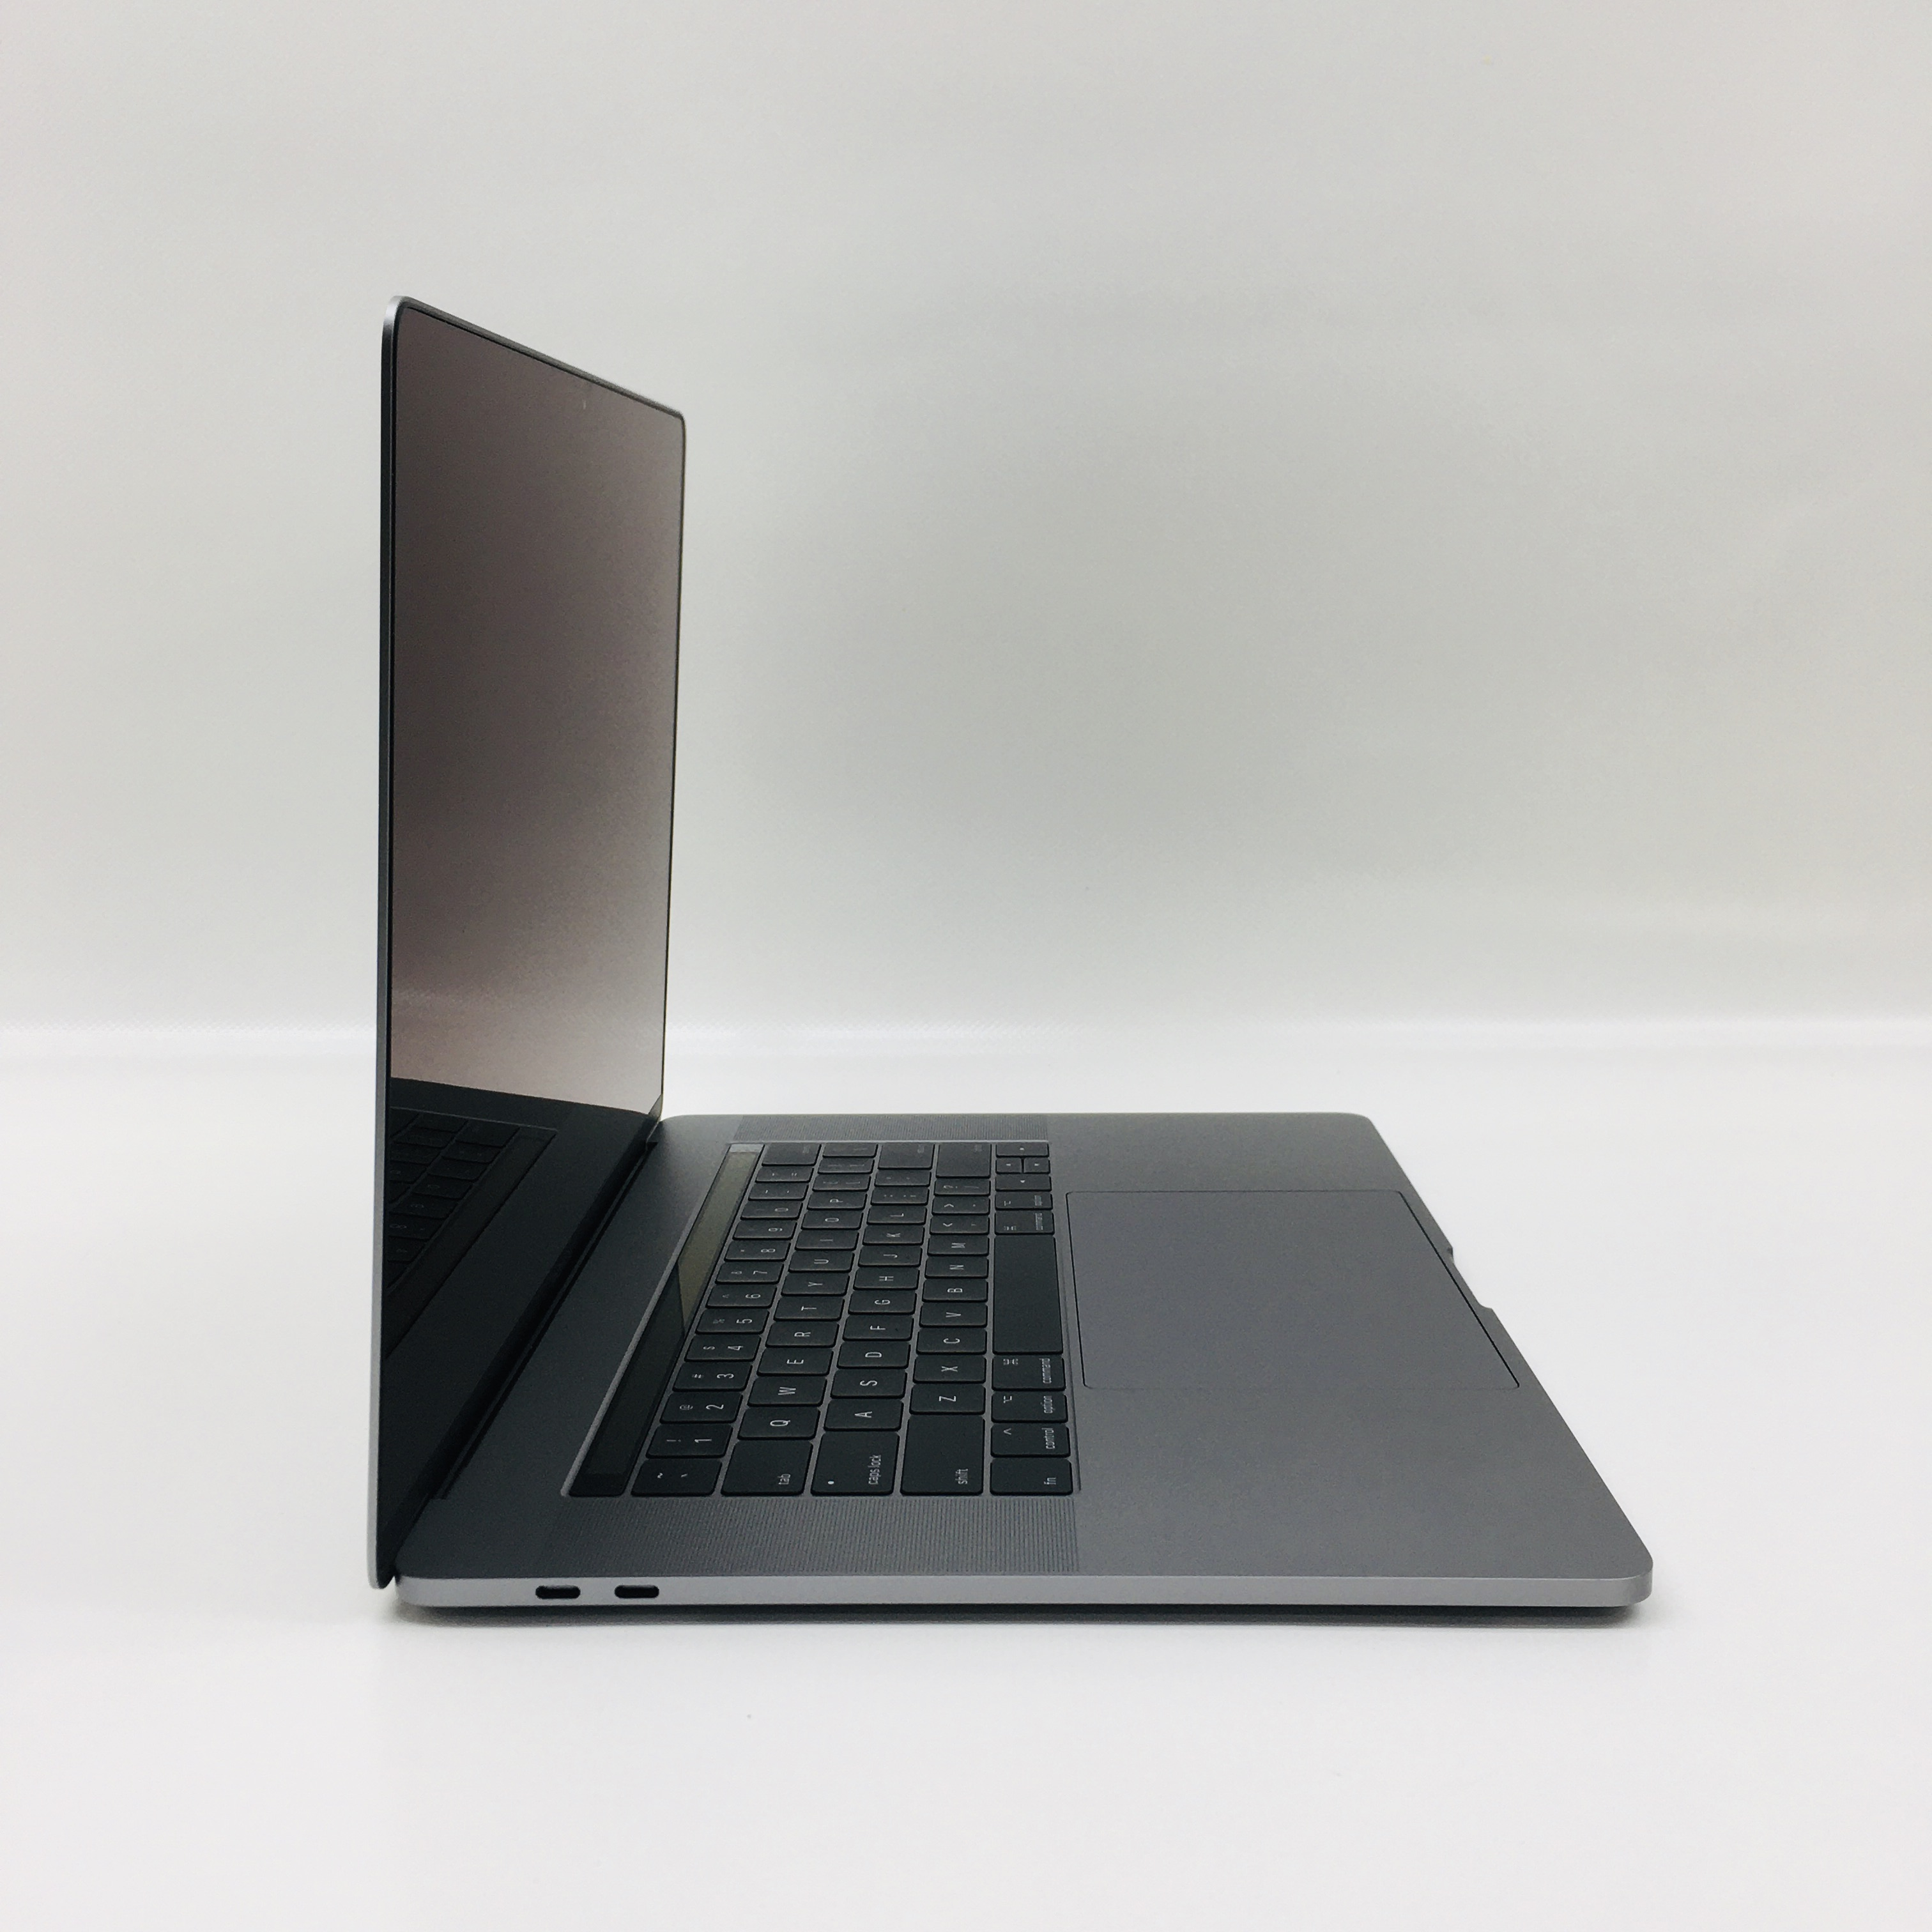 "MacBook Pro 15"" Touch Bar Late 2016 (Intel Quad-Core i7 2.6 GHz 16 GB RAM 256 GB SSD), Space Gray, Intel Quad-Core i7 2.6 GHz, 16 GB RAM, 256 GB SSD, image 2"